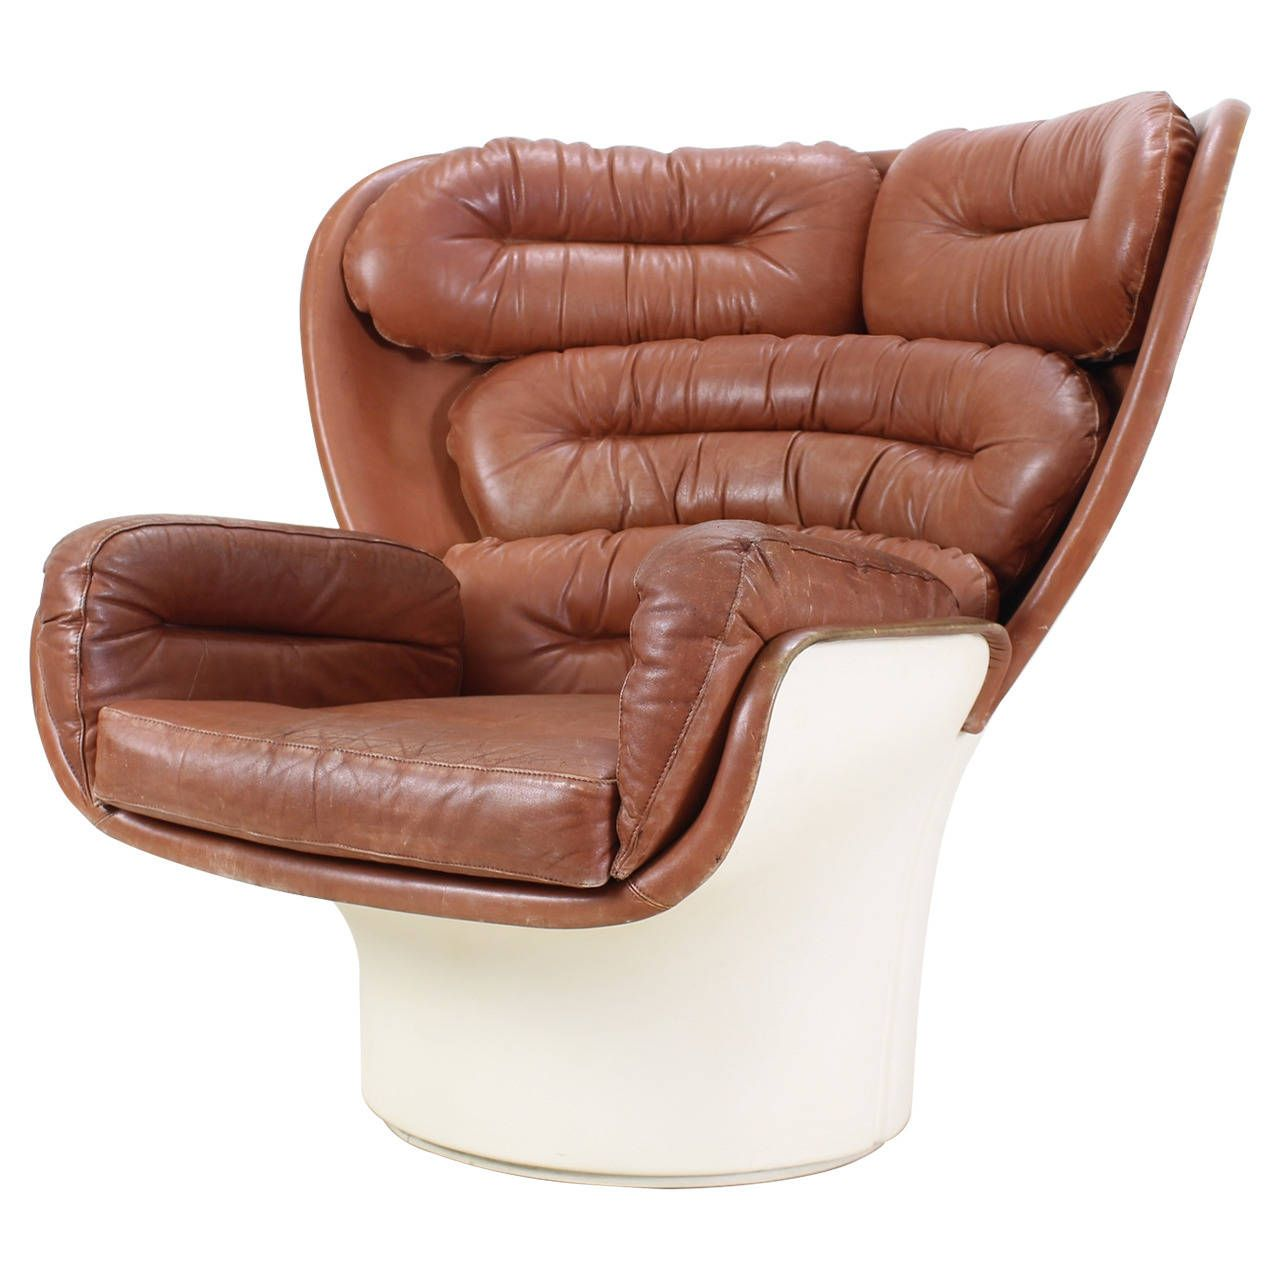 Best Brown Leather Joe Colombo Elda Chair For Comfort Italy 640 x 480